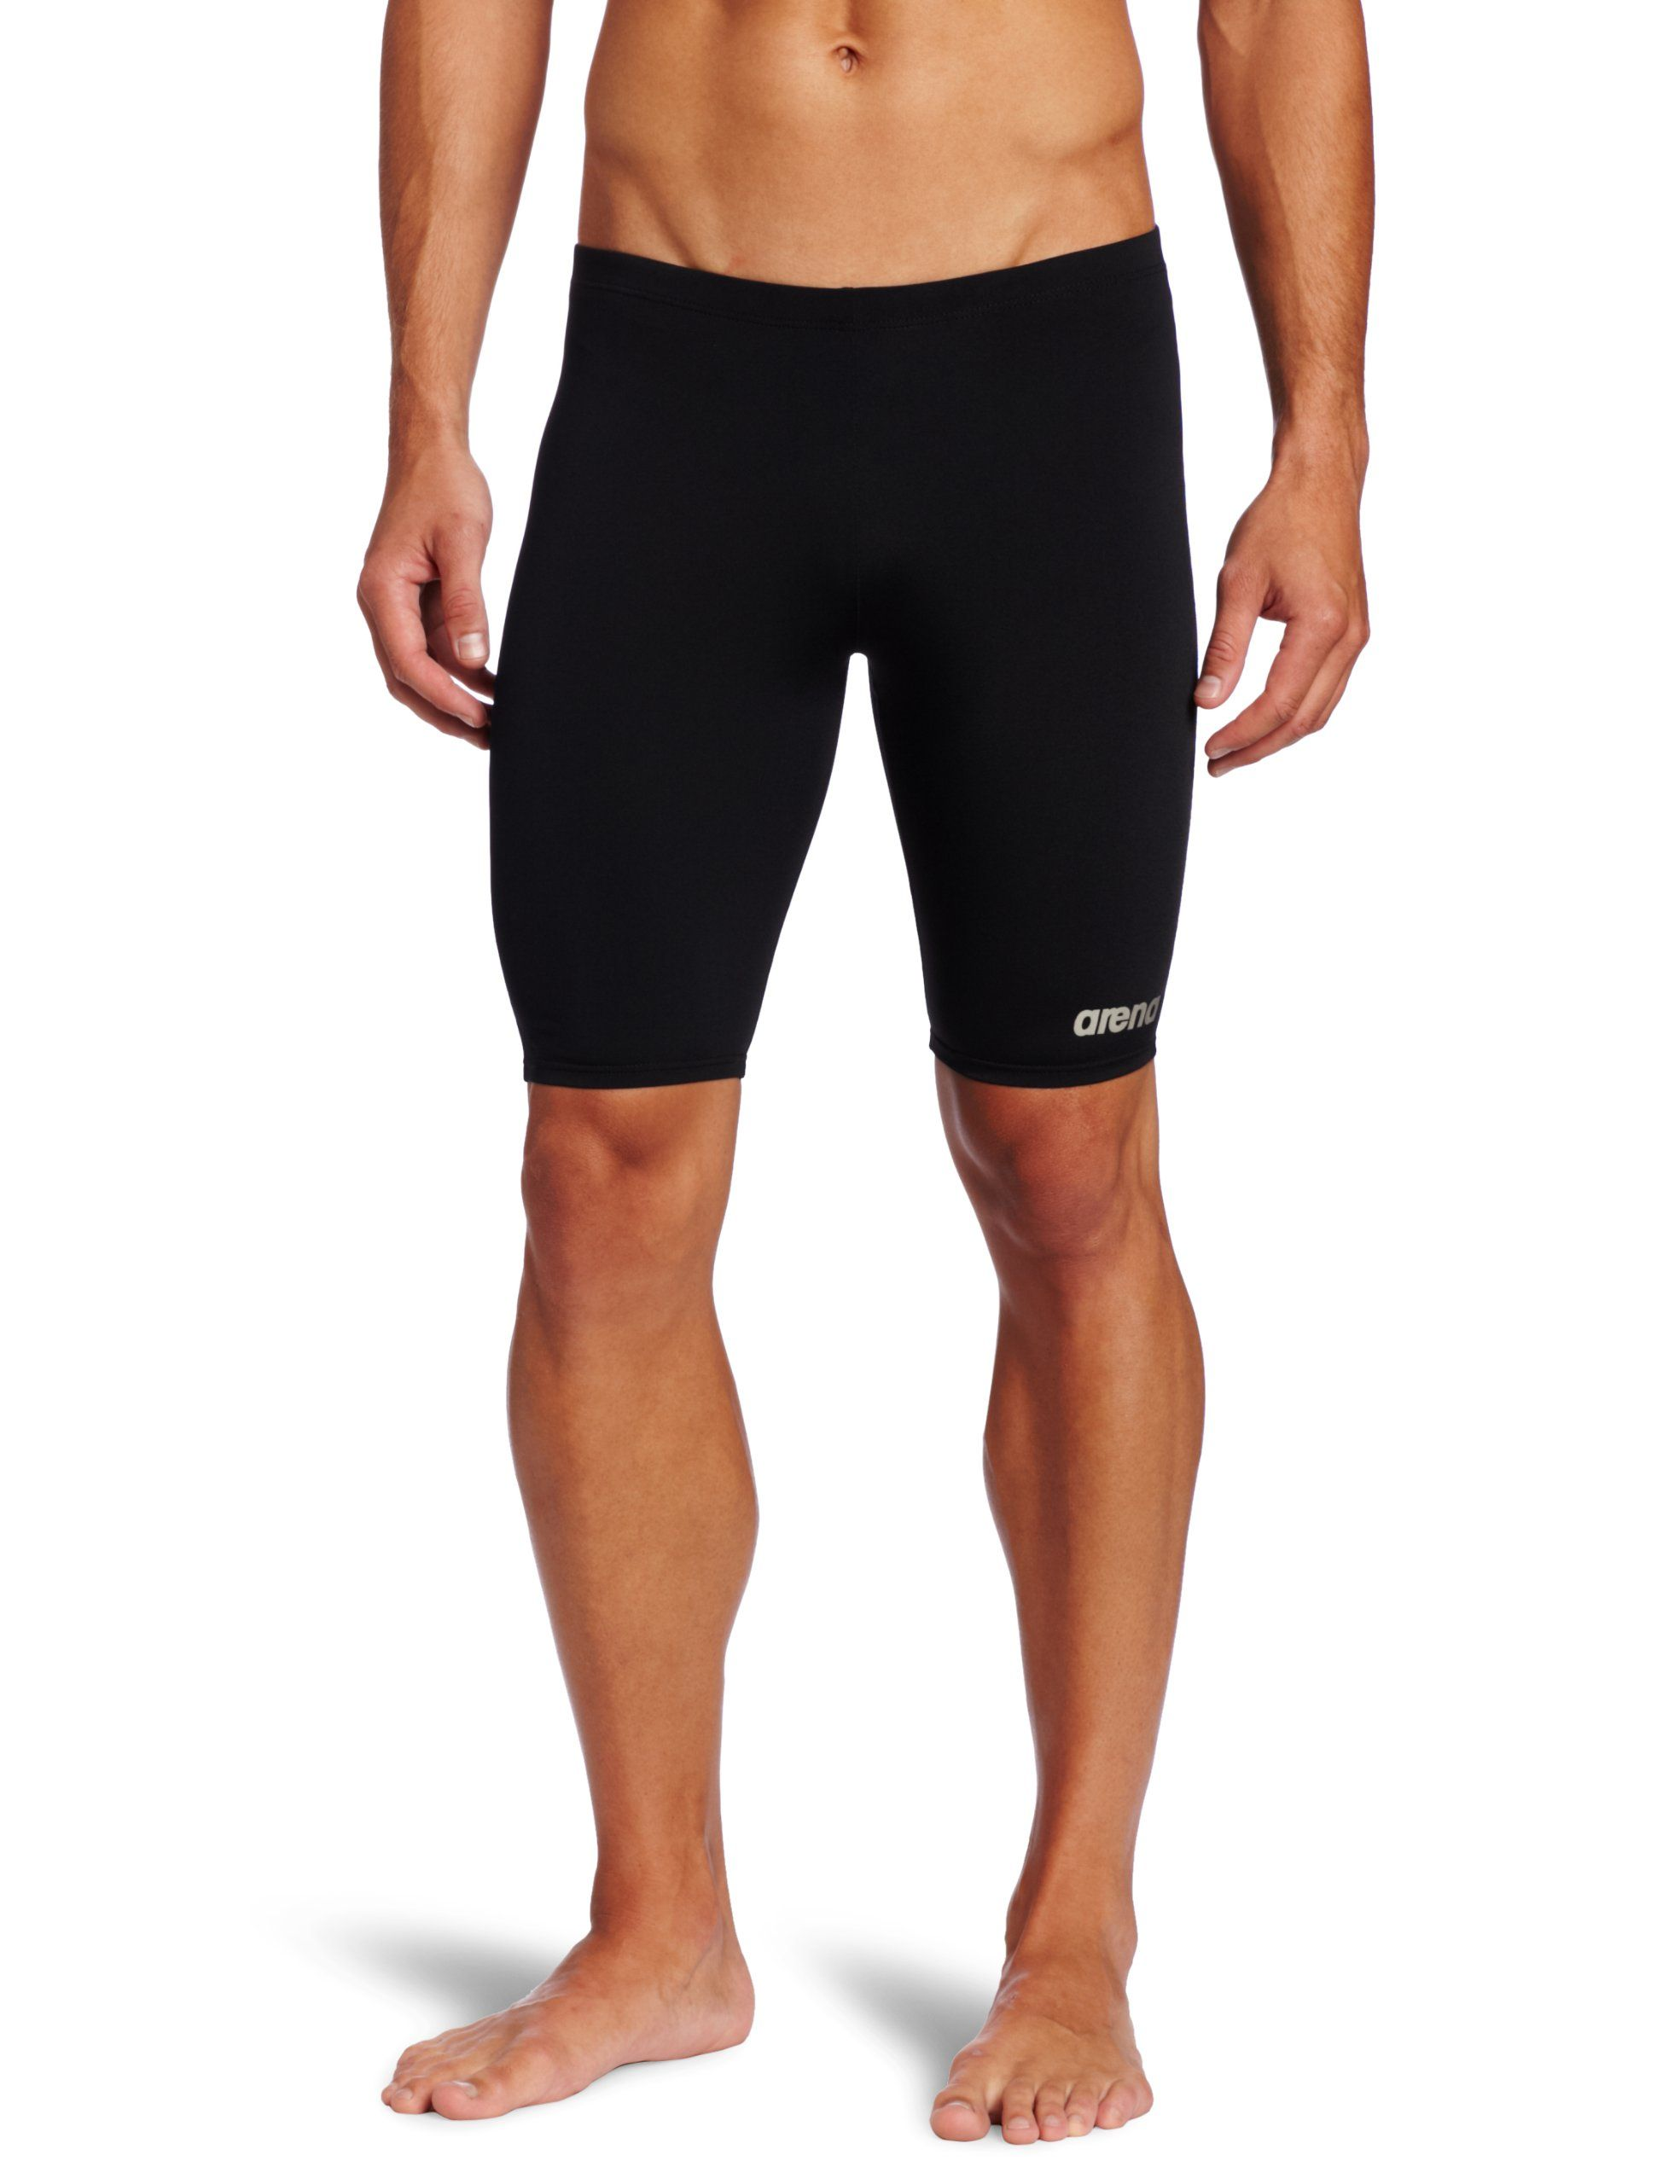 157ac135f3 Arena Men's Board Race Polyester Solid Jammer Swimsuit - Black/Metallic  Silver,32.